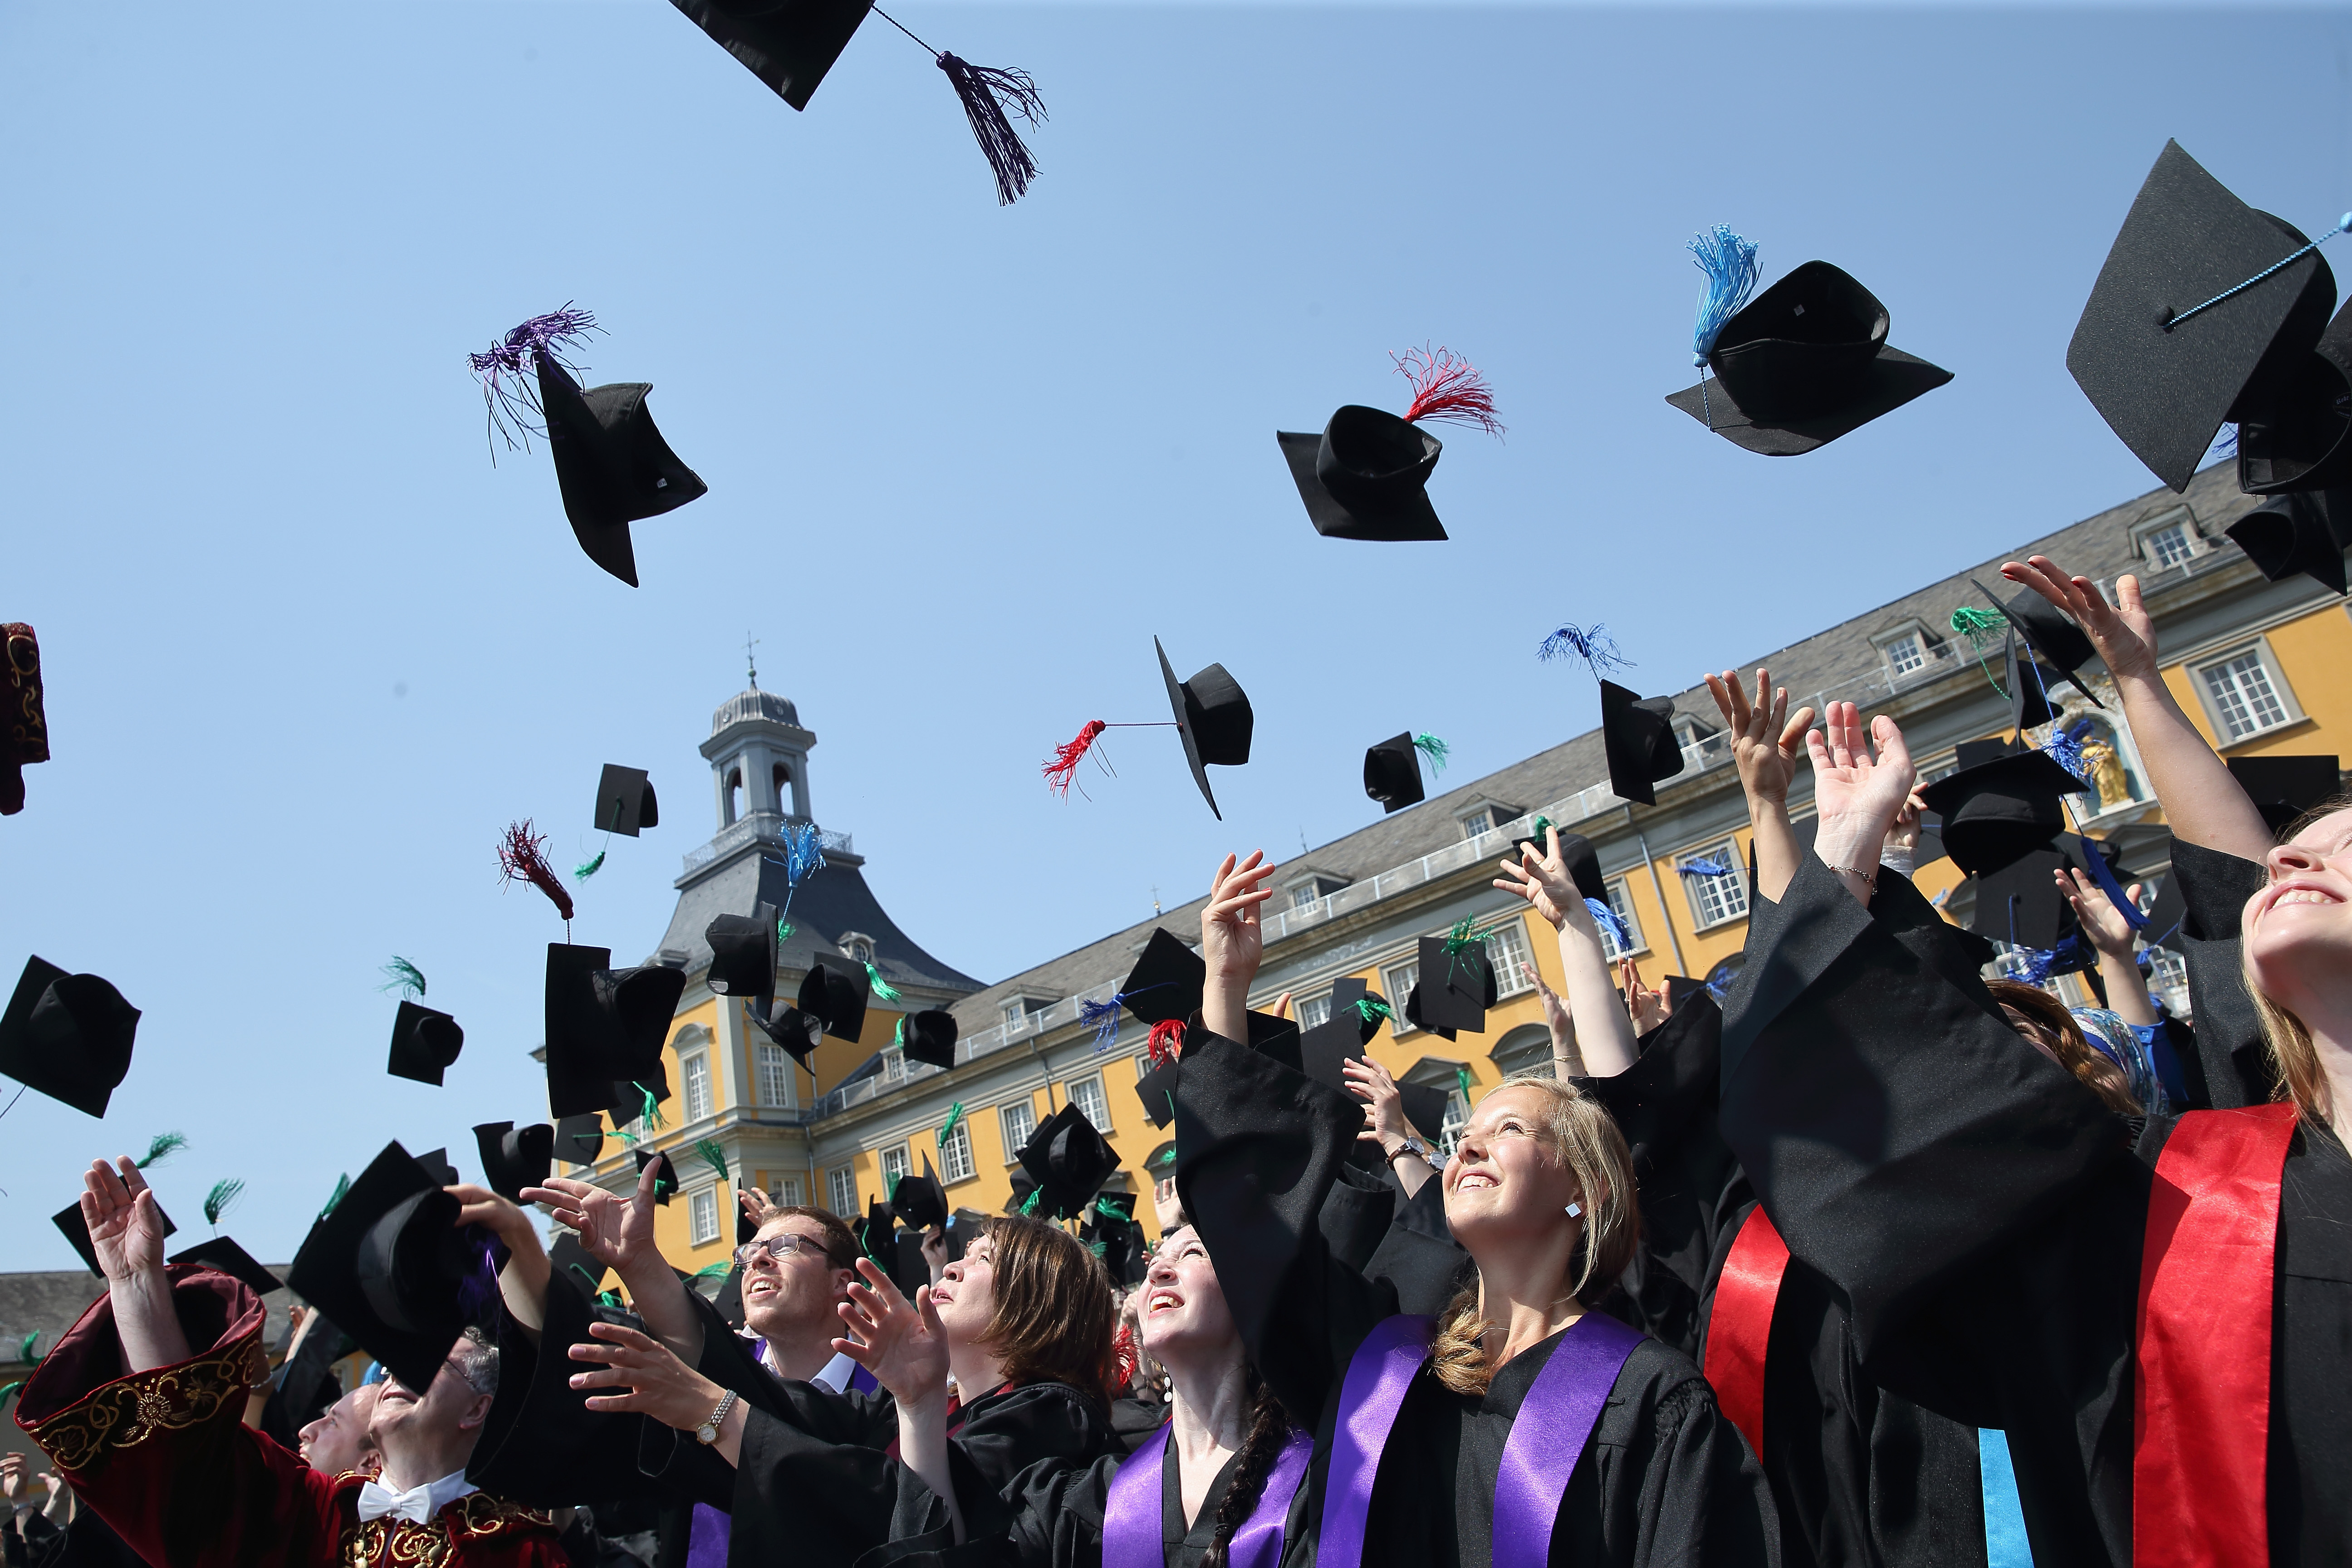 University Students Celebrate Their Graduation